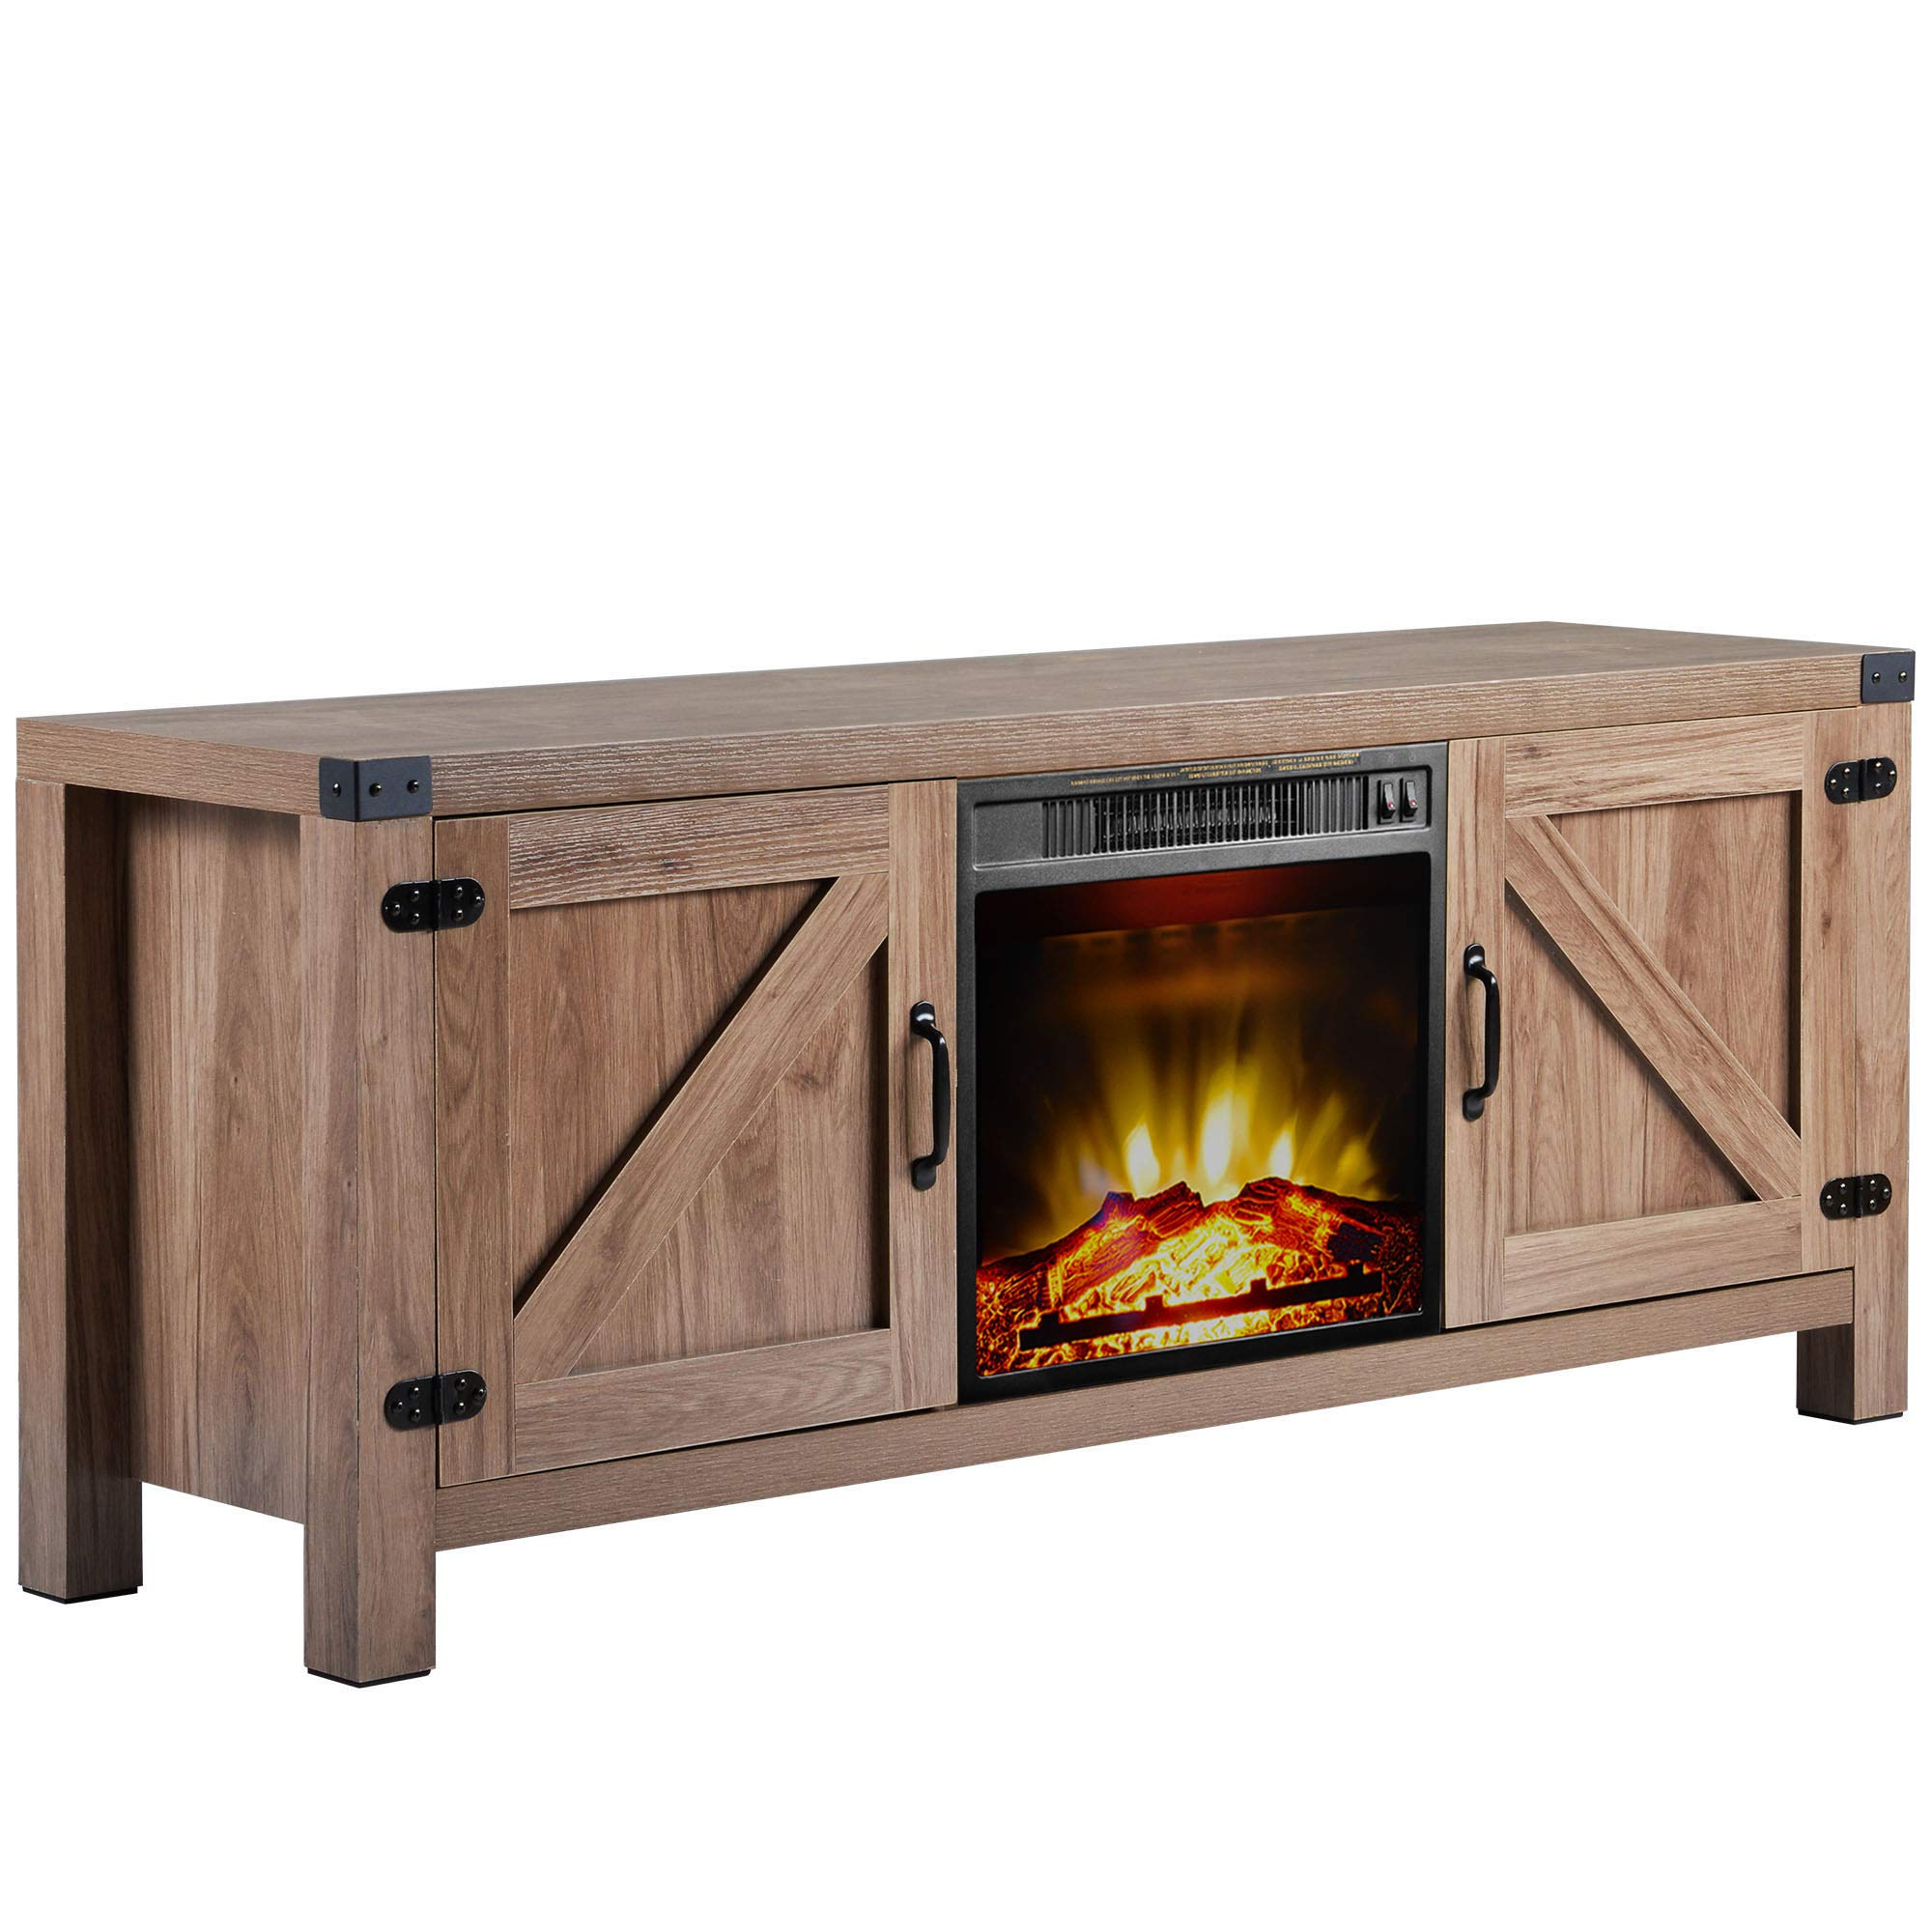 MIERES 58 inch Barn Door Wood Fireplace Stand for TV's up to 65 inch Living Room Storage, Nature by MIERES